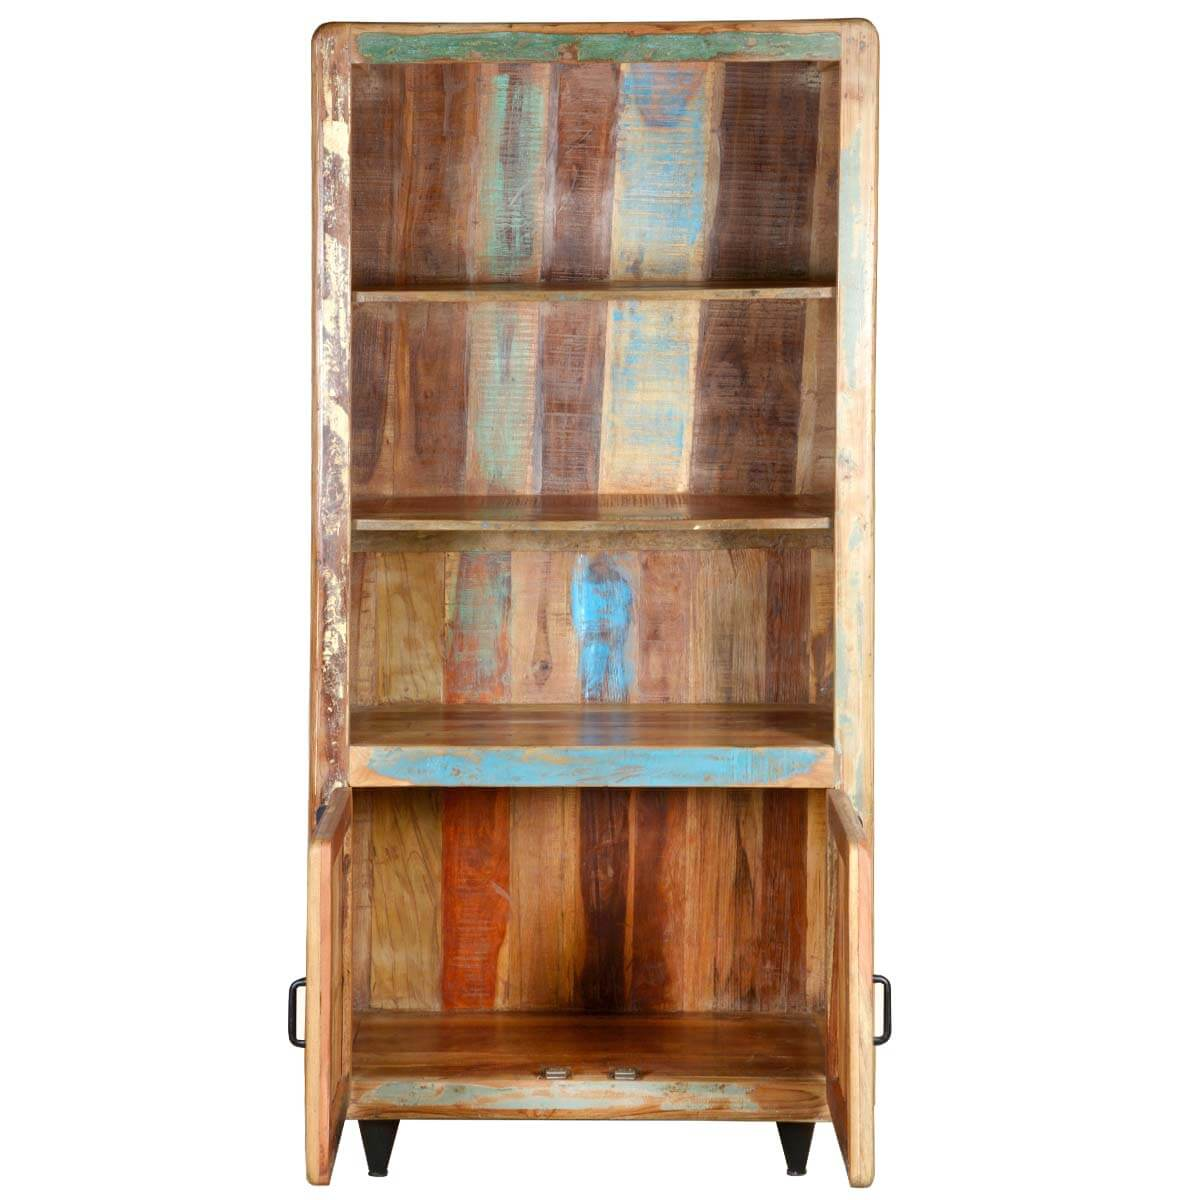 Retro Rustic Reclaimed Wood Open Shelf Bookcase